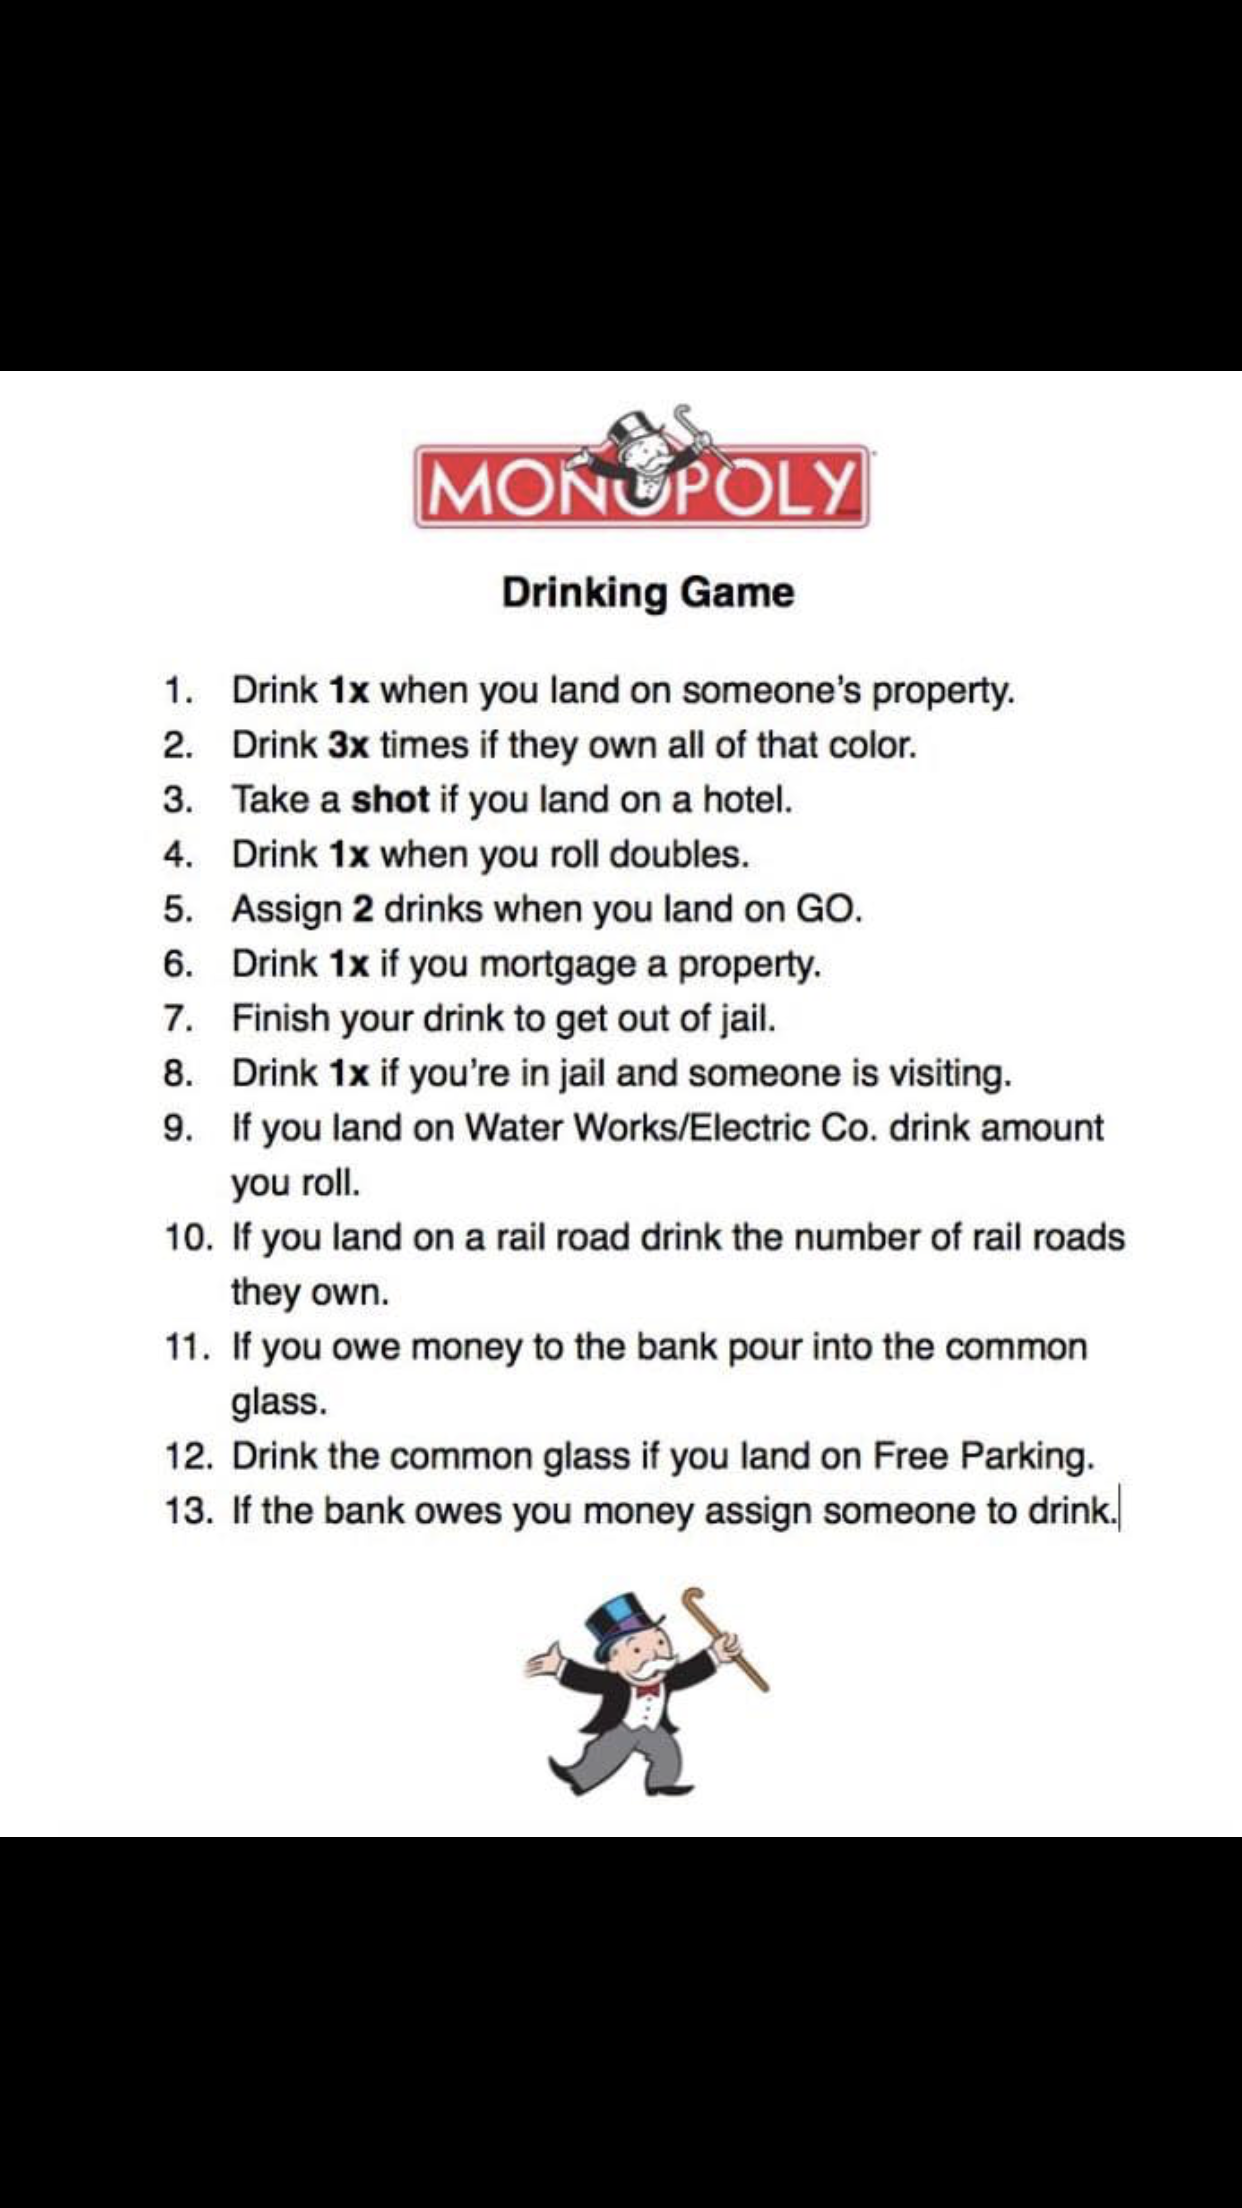 Monopoly drinking game | Gift in 2019 | Monopoly drinking